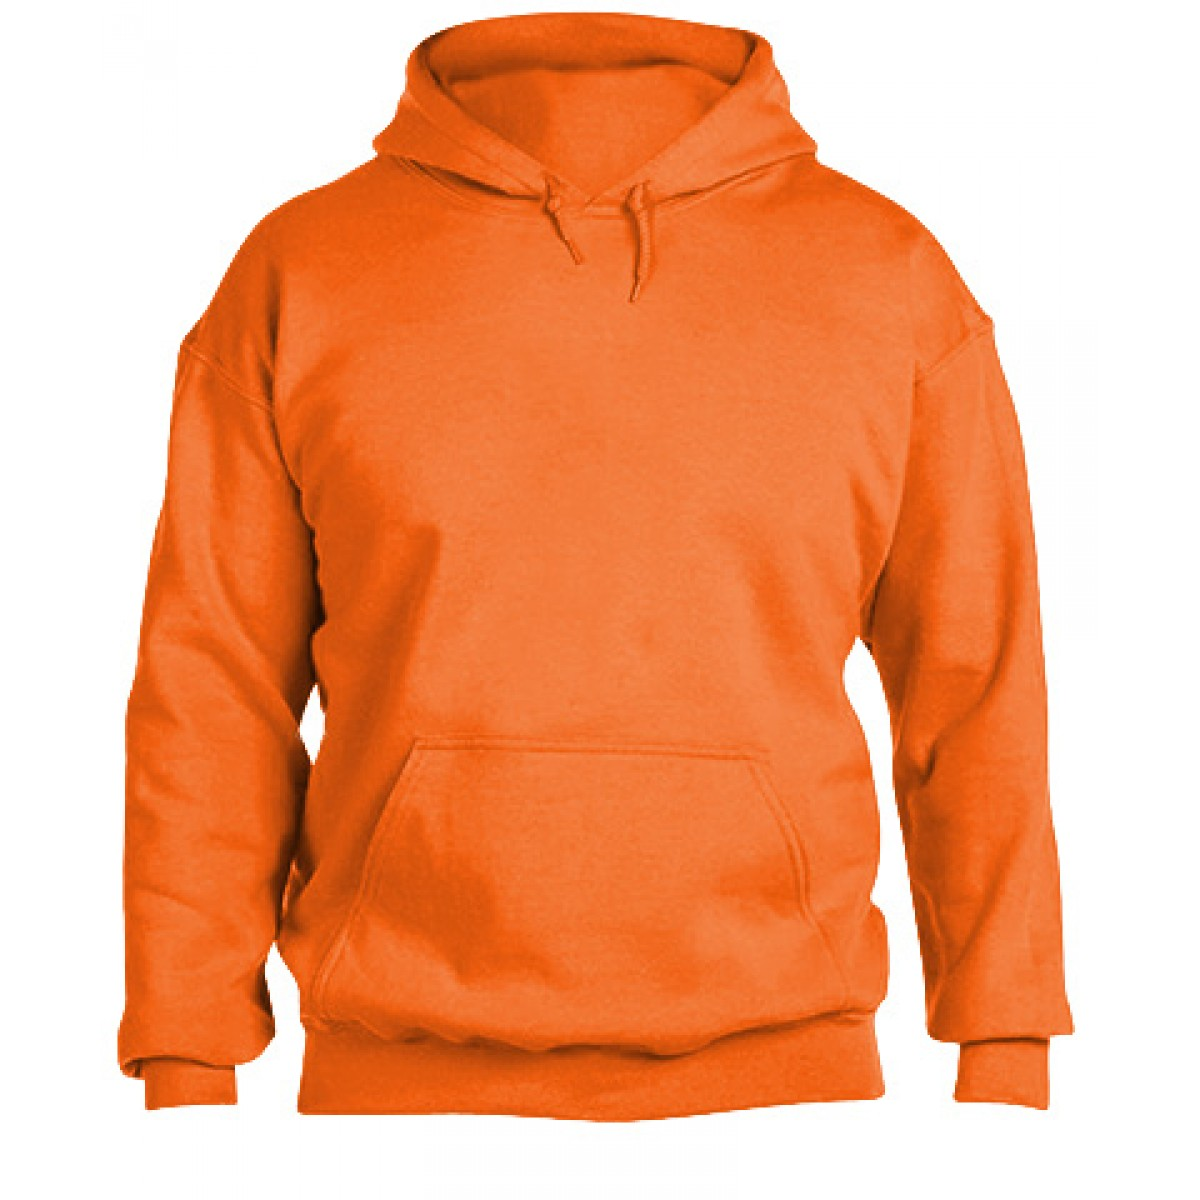 Hooded Sweatshirt 50/50 Heavy Blend-Safety Orange-YL